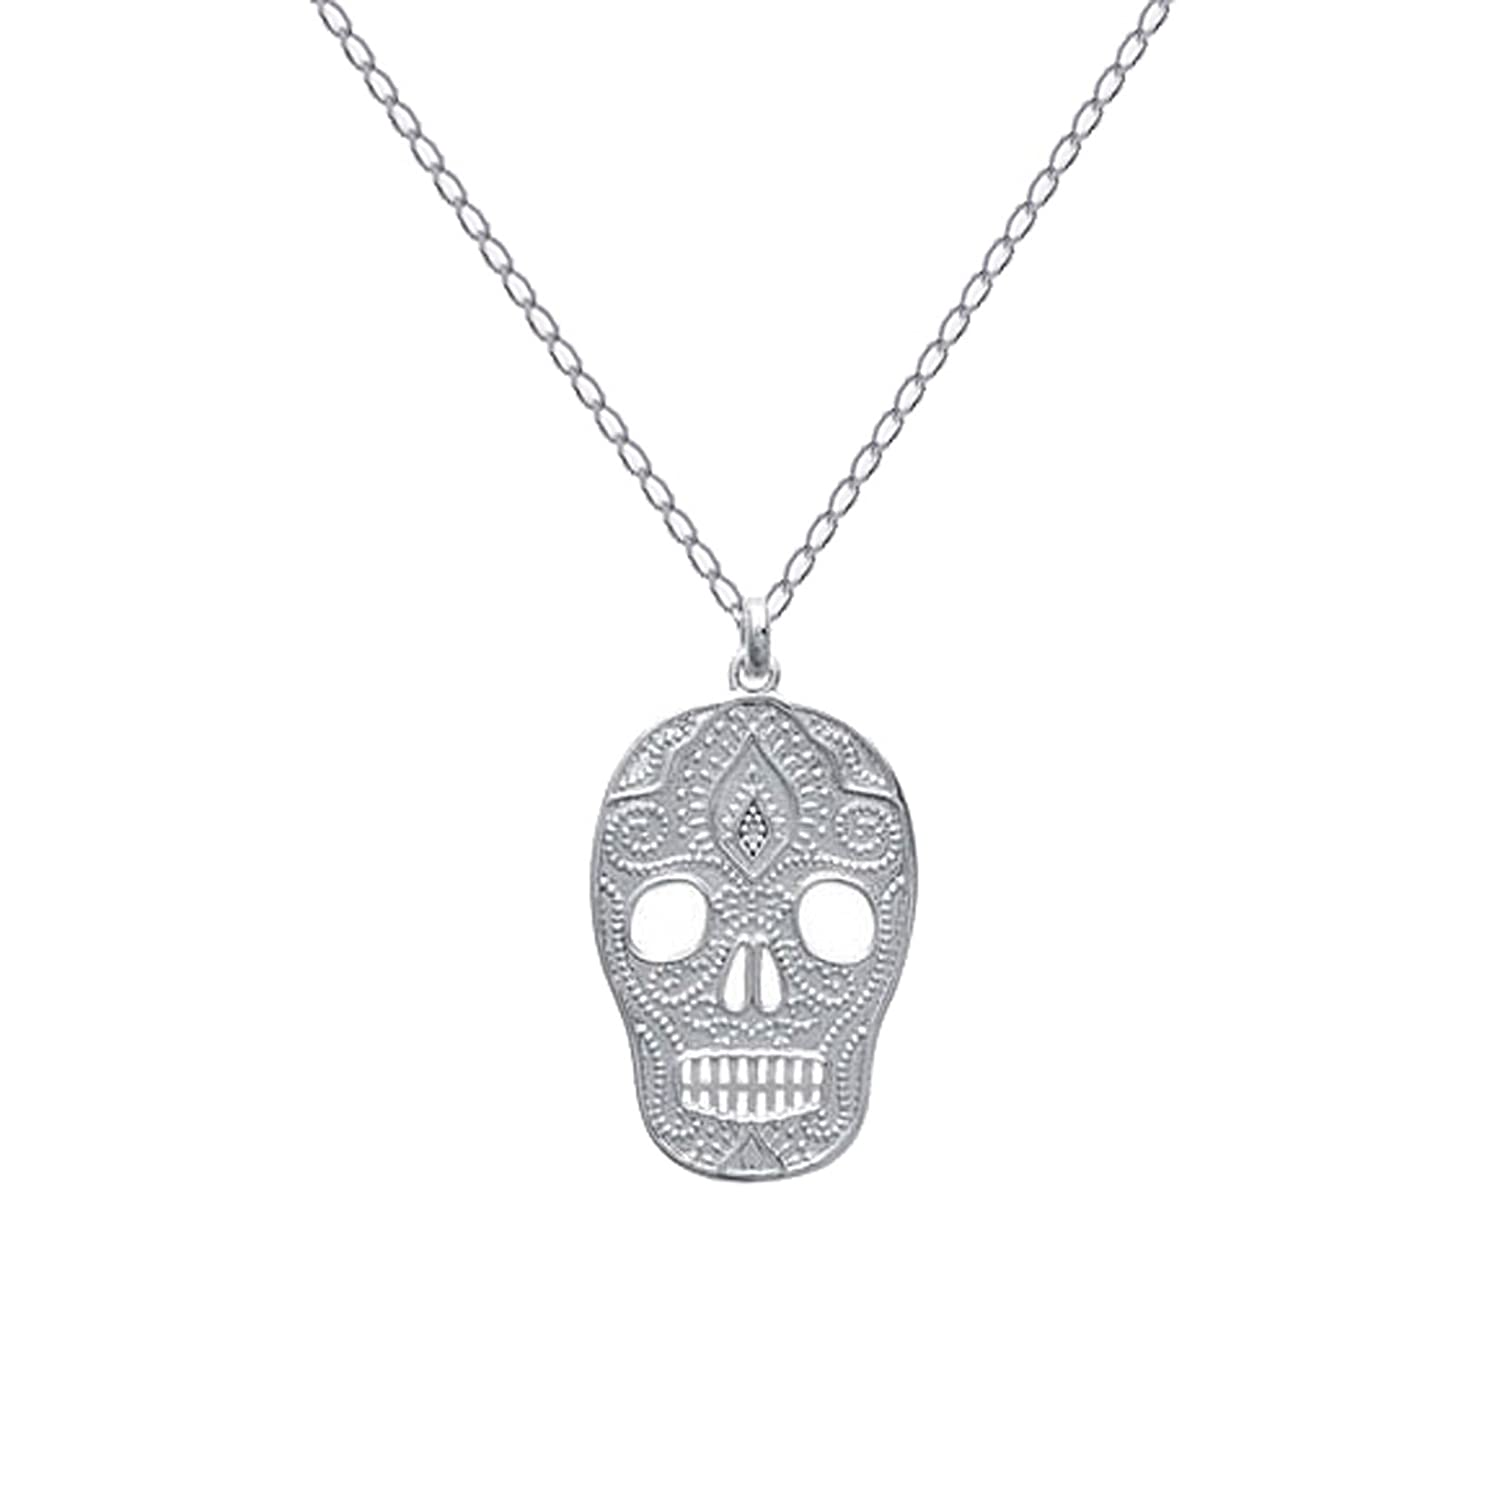 Skull And Crossbones Necklace 50 cm RhodiumPlated 925 Sterling Silver New